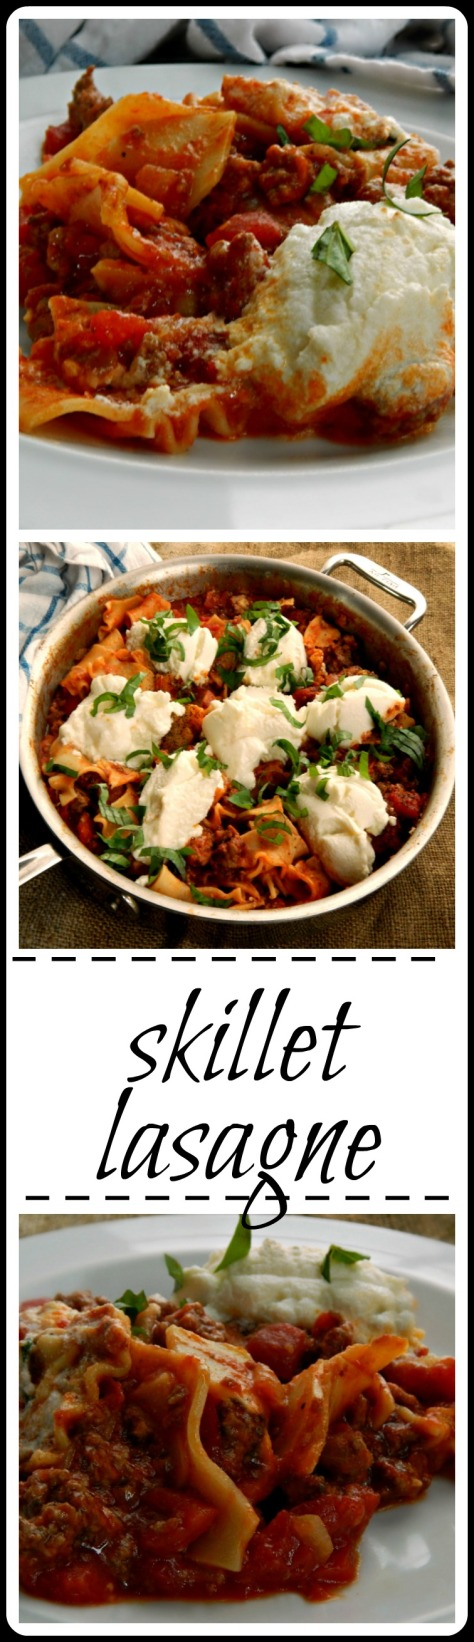 Skillet Lasagne - easy meal with all the taste of a real deal lasagne